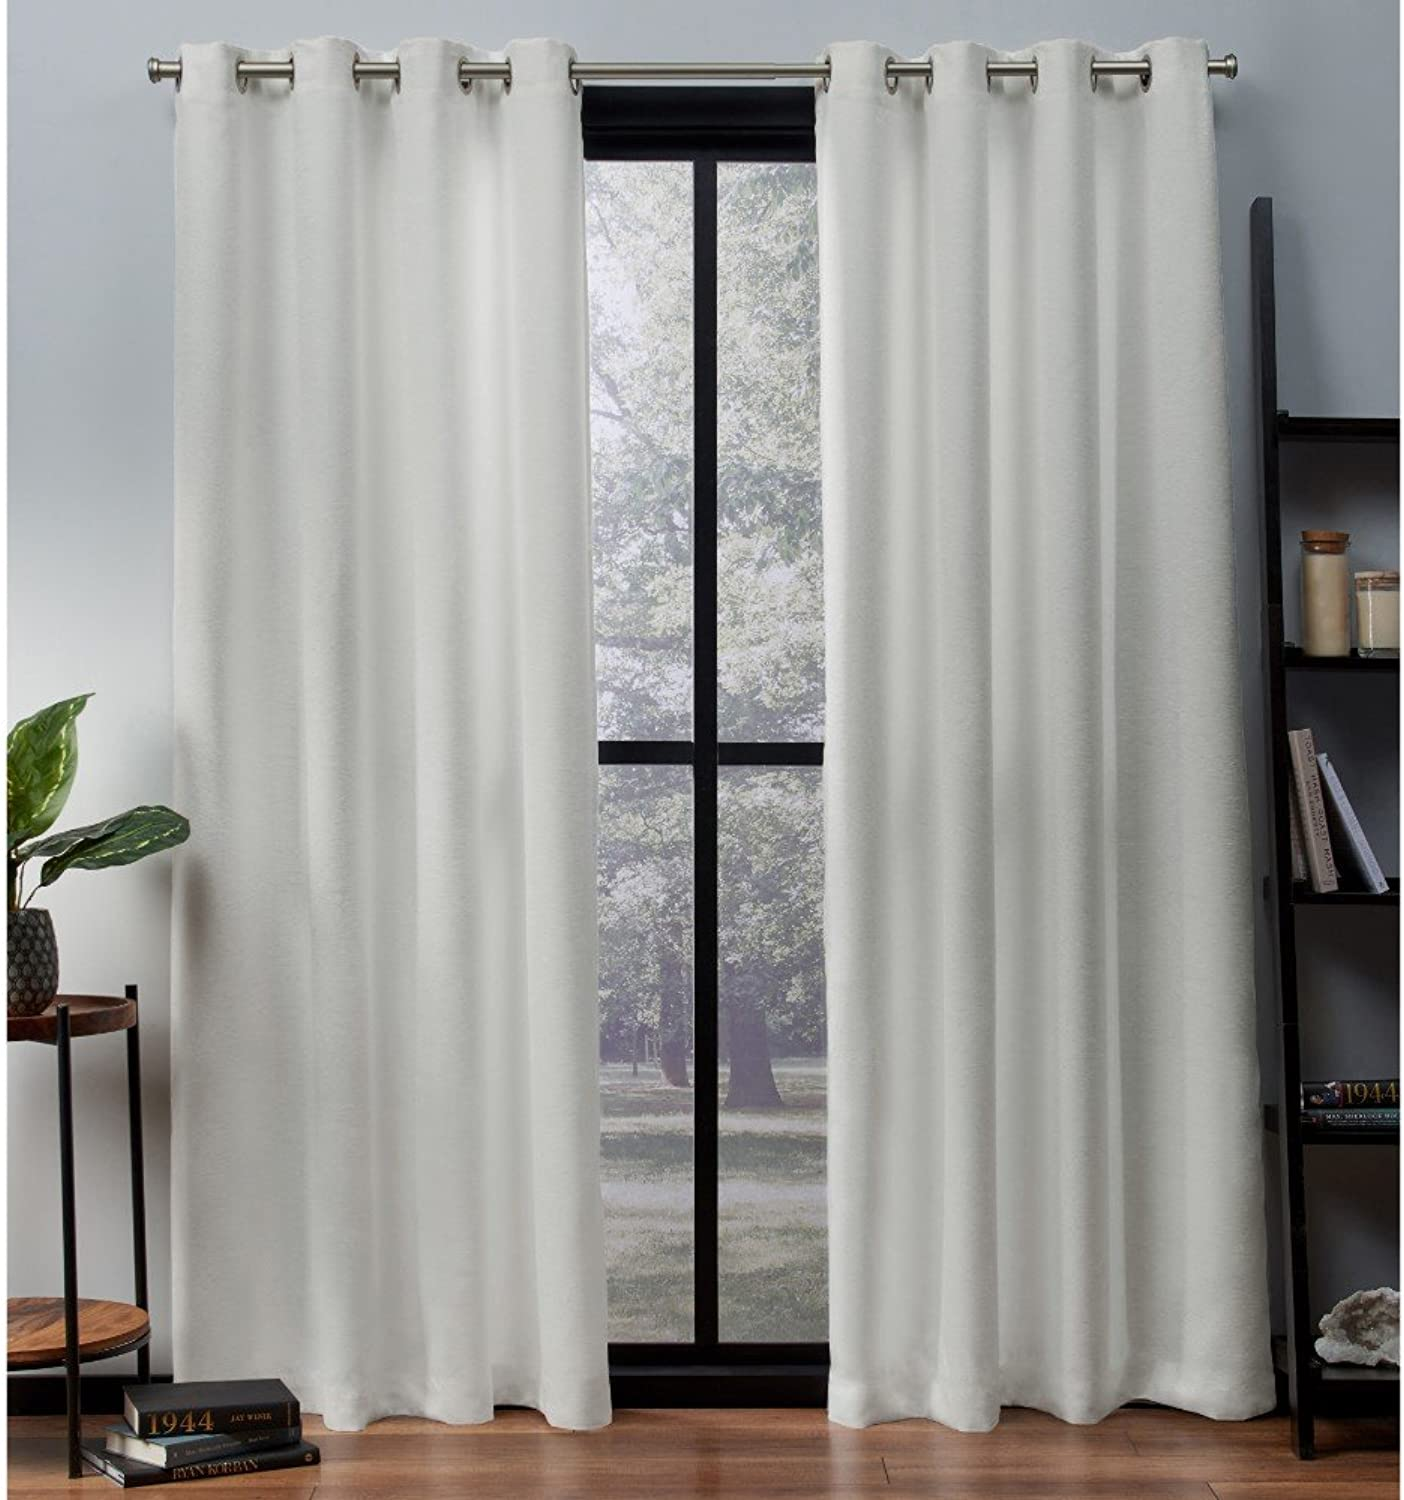 Exclusive Home Curtains Oxford Textured Sateen Thermal Window Curtain Panel Pair with Grommet Top, 52x108, Vanilla, 2 Piece